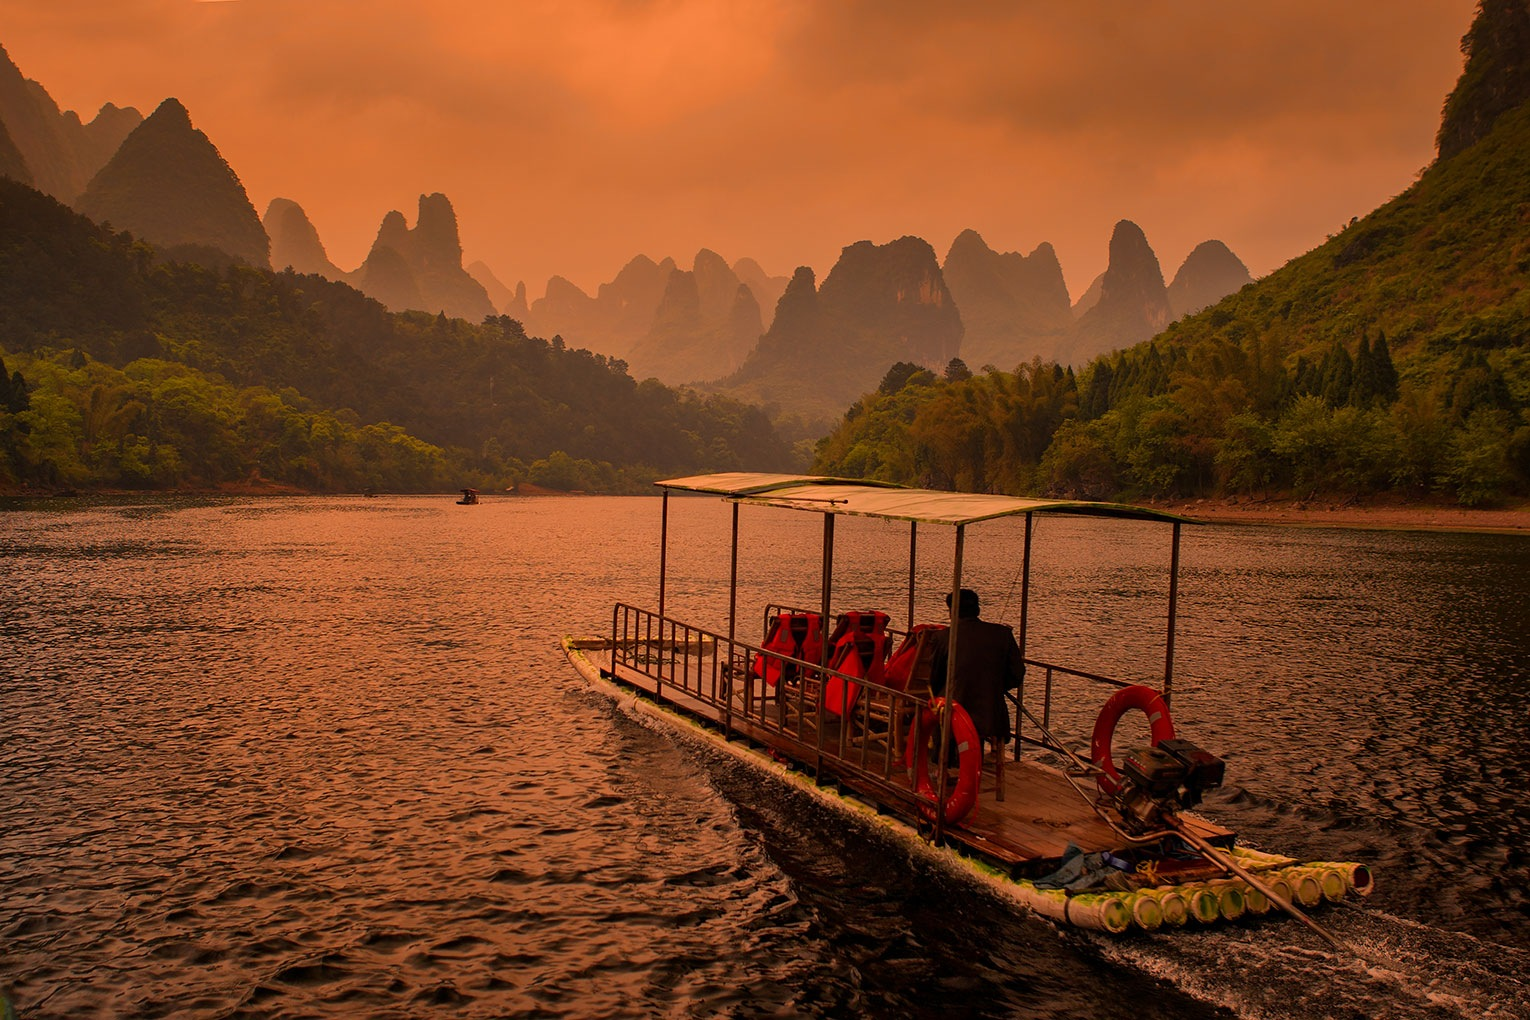 Li River, Cruise from Guilin to Yangshuo. by Sotiris Siomis